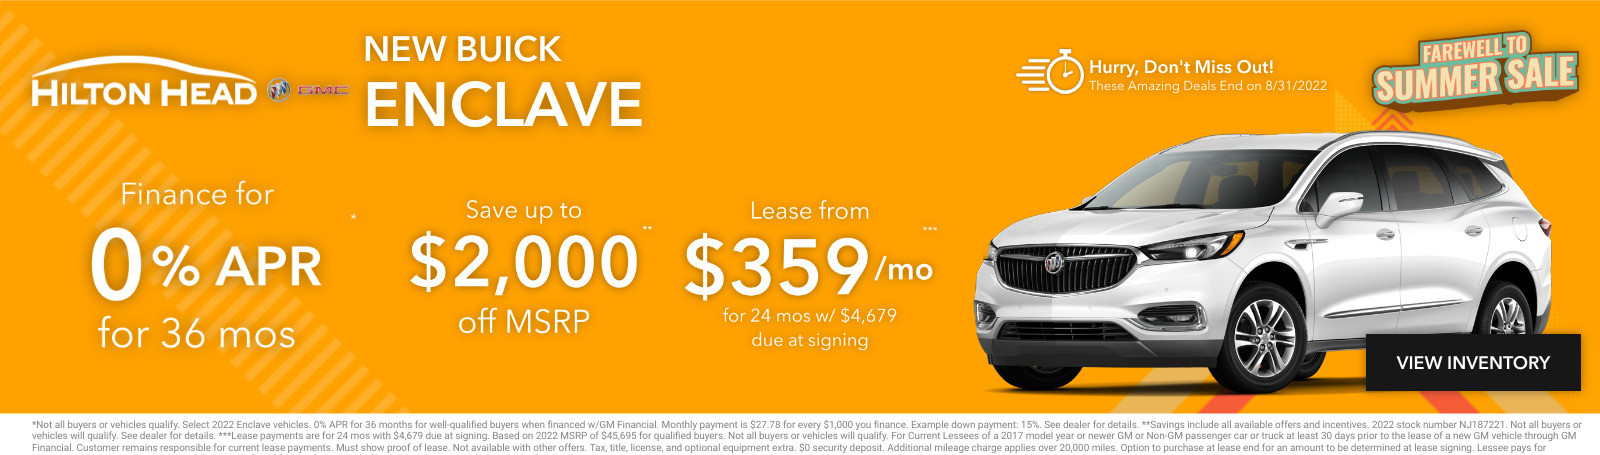 New Buick Enclave Current Deals and Offers in Savannah, GA